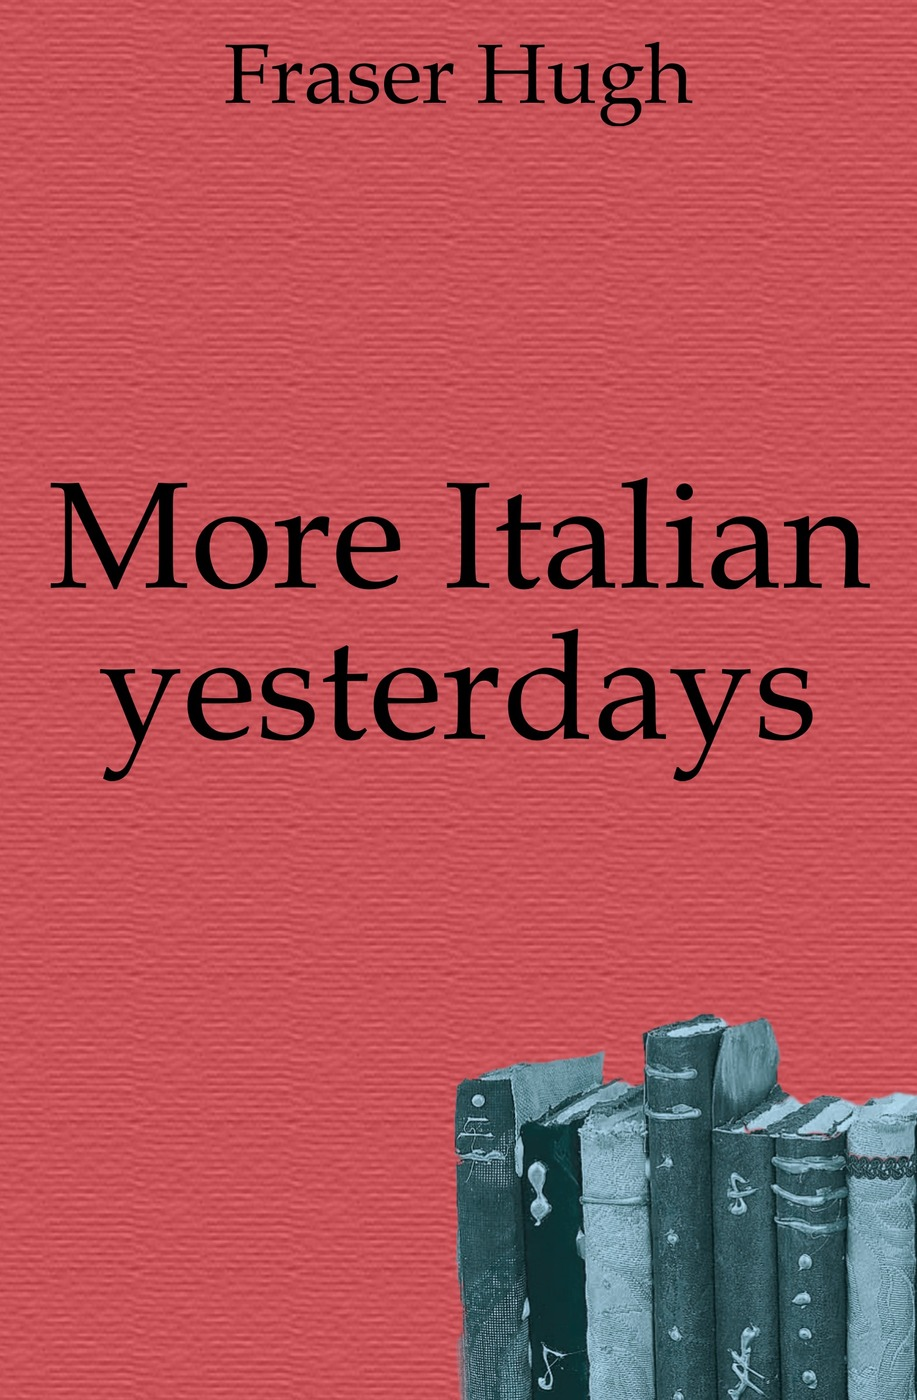 More Italian yesterdays